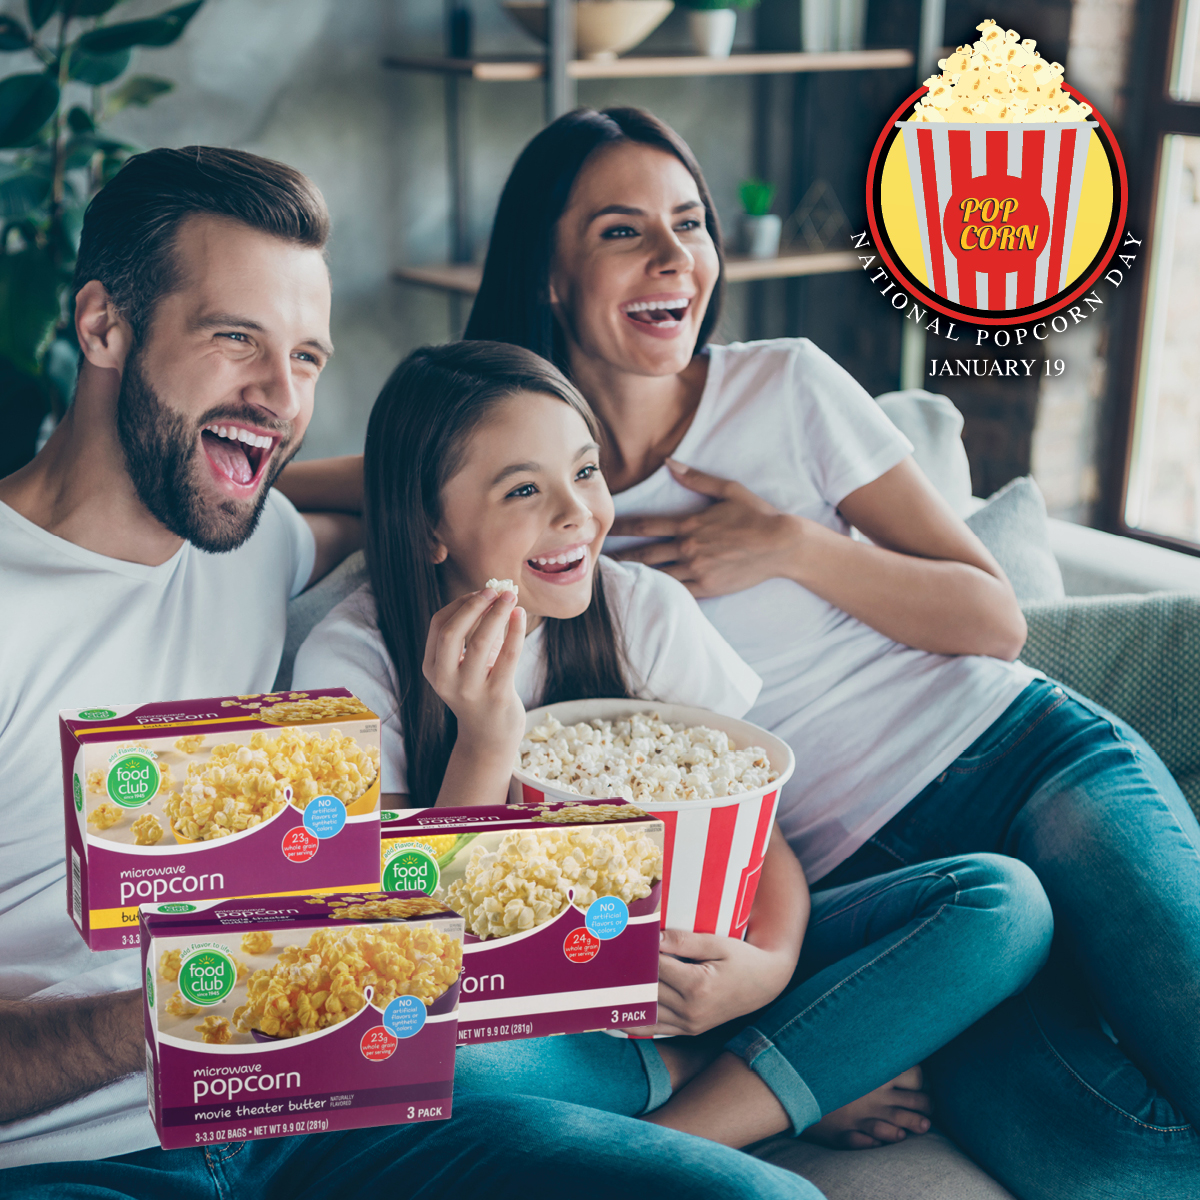 Save and earn Celebrate Rewards points when you enjoy Food Club Popcorn this National Popcorn Day! 🍿 Sign up to begin saving ➡ bit.ly/3o6SylX #BrookshireBrothers #NationalPopcornDay #CelebrateRewards